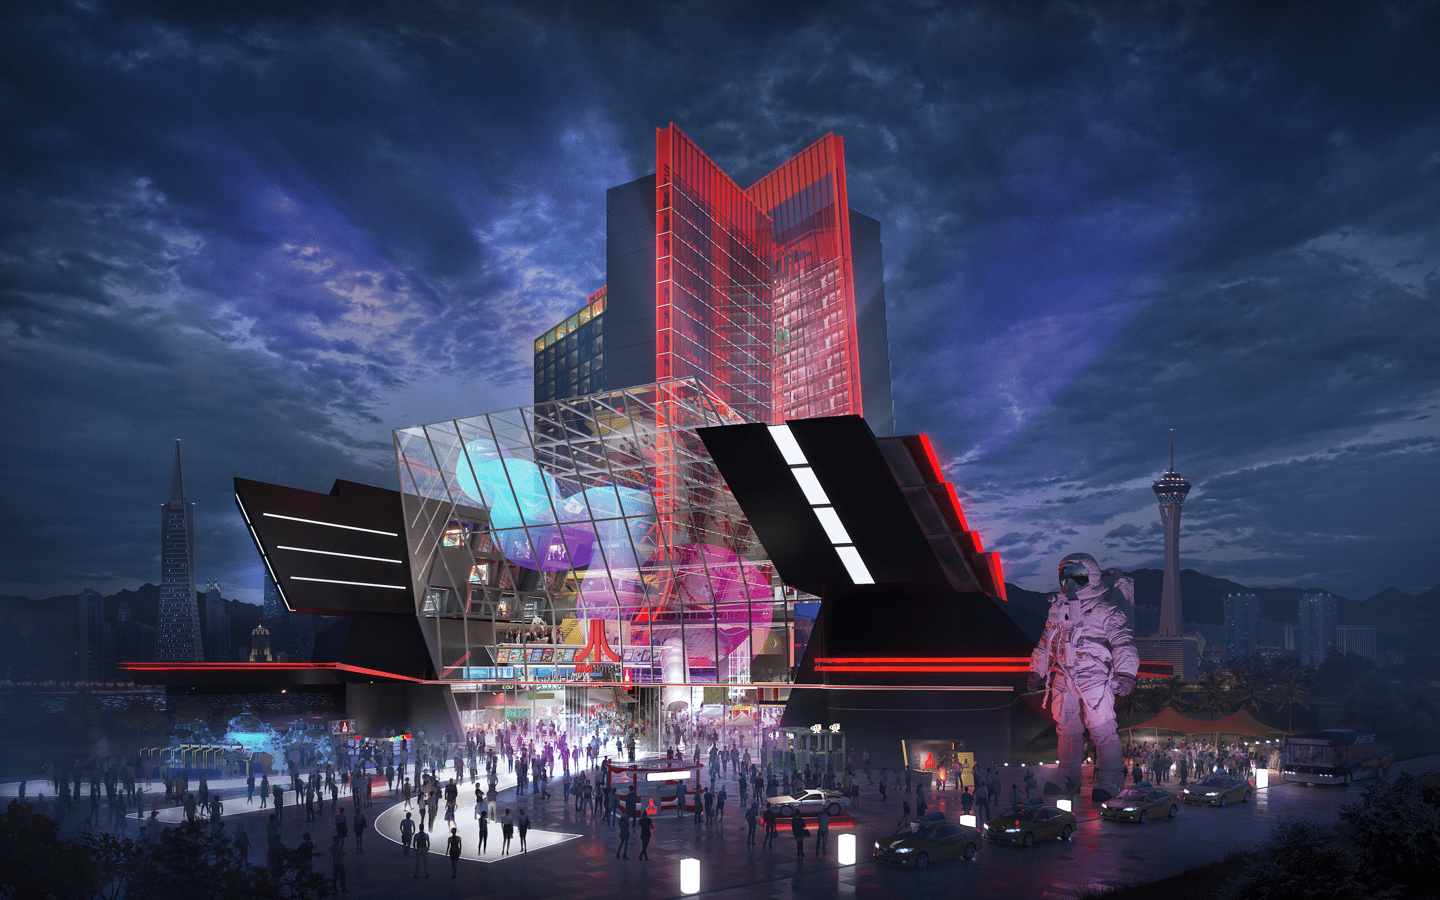 The Las Vegas Atari Hotel is designed by Gensler and does reflect the intended design, though the final building may end up looking quite diffe